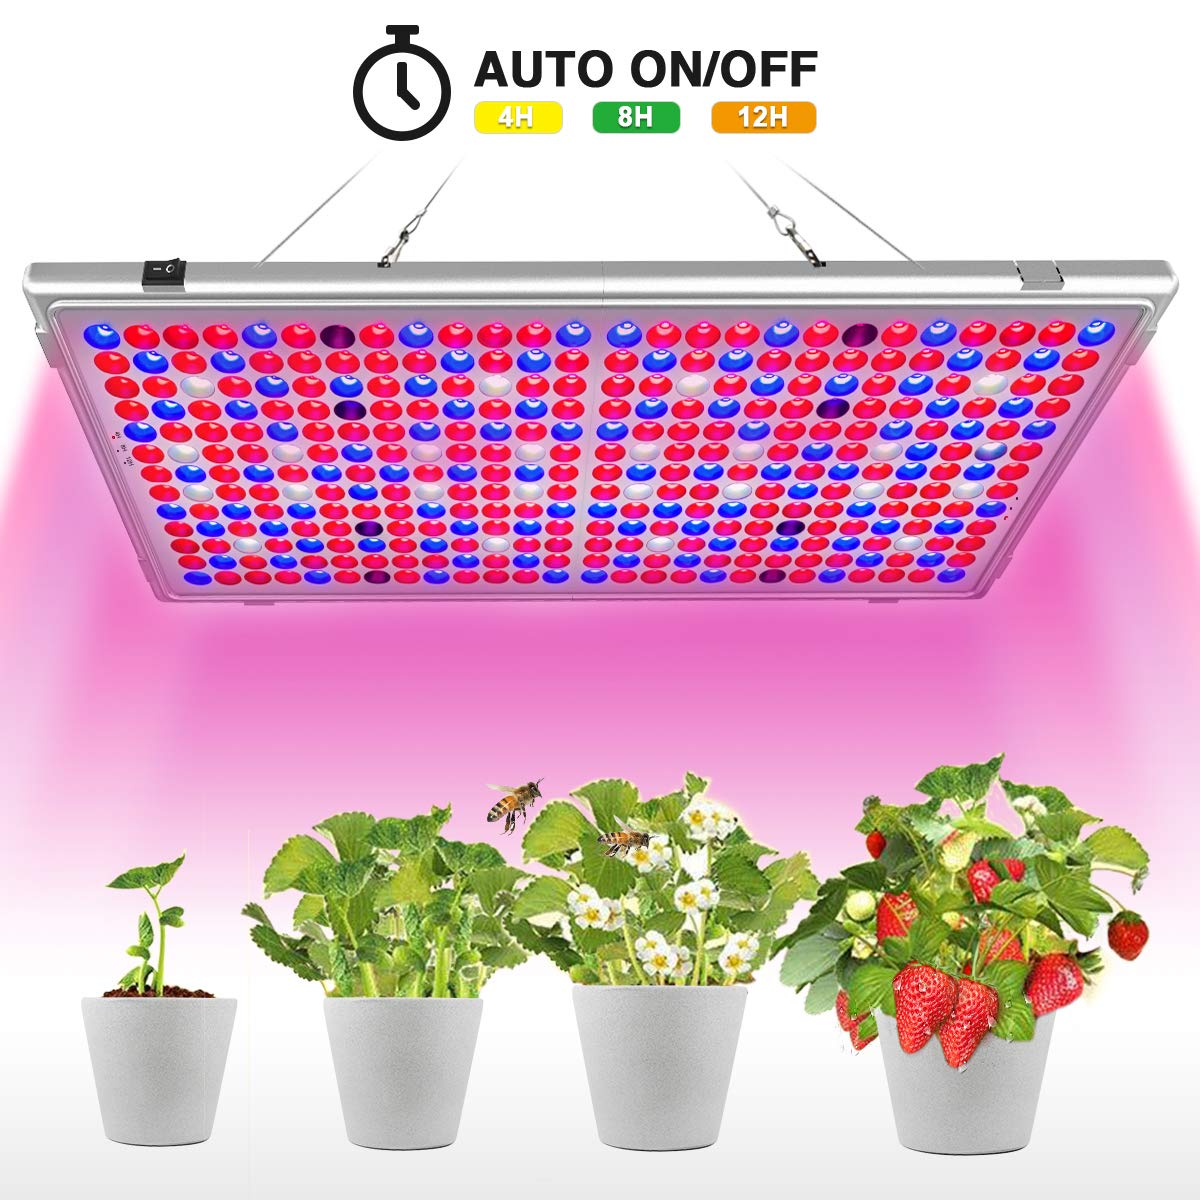 Bozily LED Grow Light, 300W Full Spectrum Grow Lights for Indoor Plants Auto On/Off, 16-Band and 338 Reflector LEDs, Oversized Led Grow Lamp for Greenhouse Tent Veg and Flower